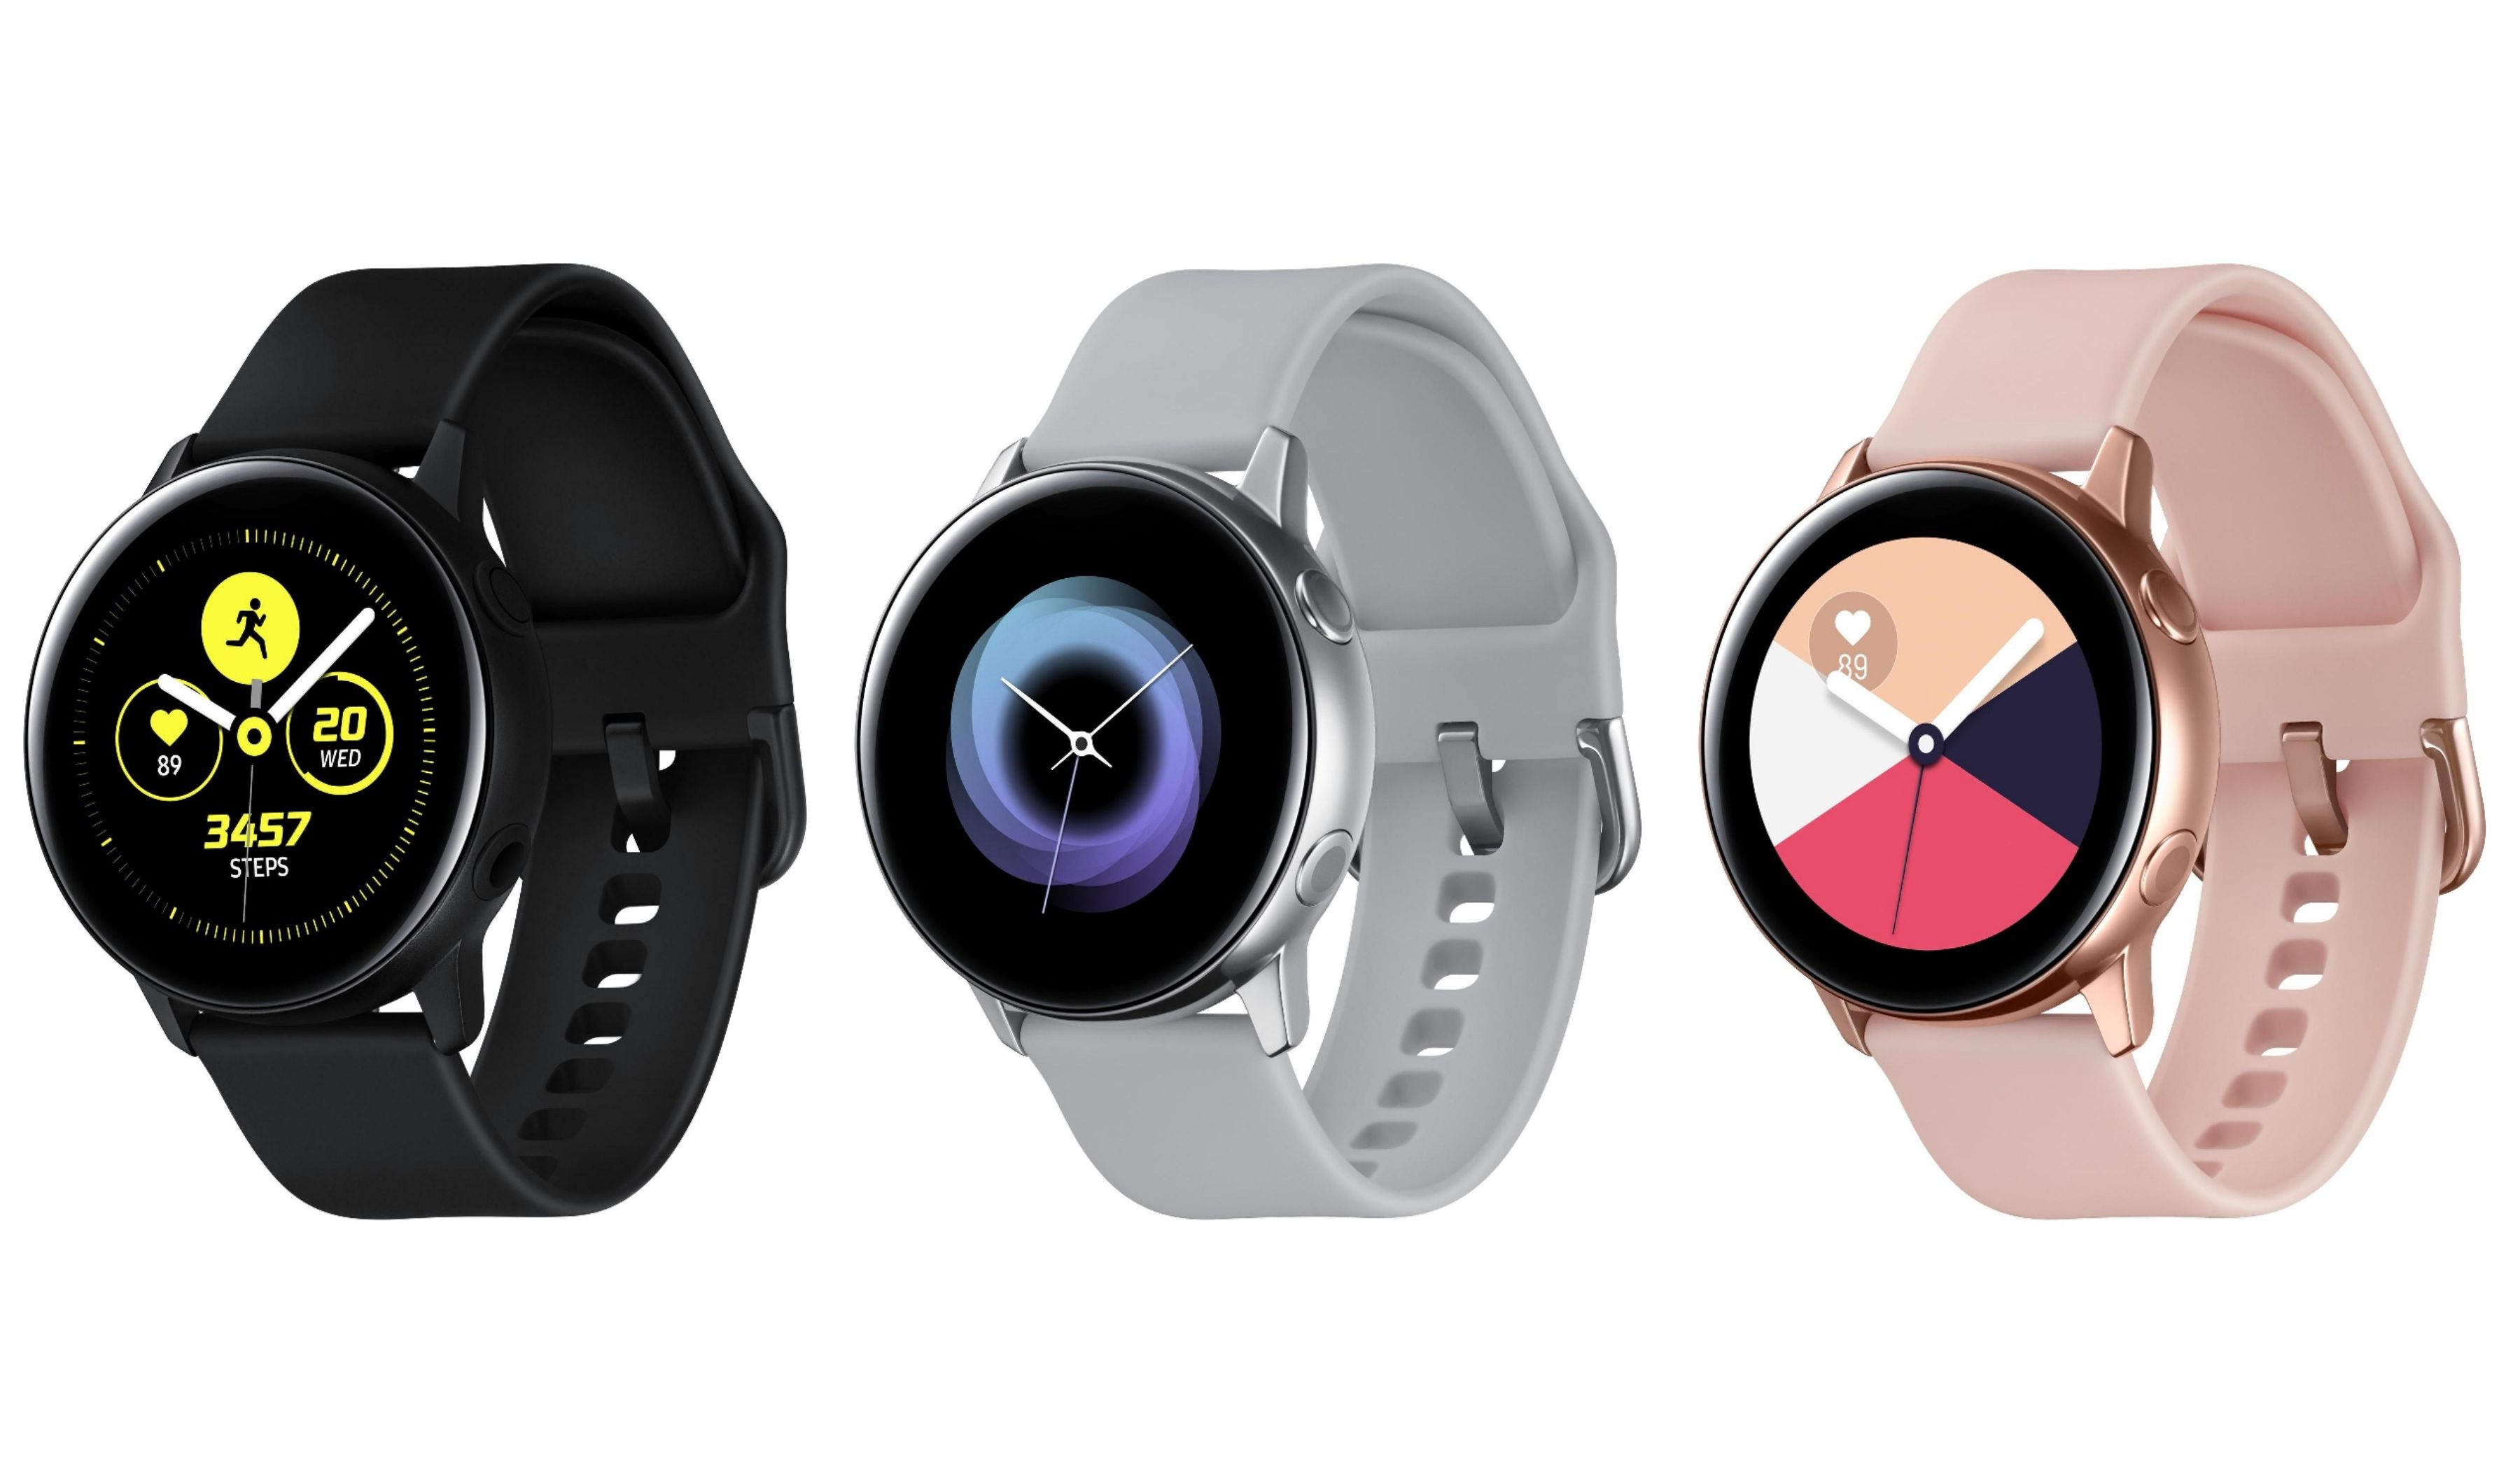 15d097376f23e0 Heres Our Best Look At Samsung Galaxy Watch Active Galaxy Buds in  High-Resolution Renders